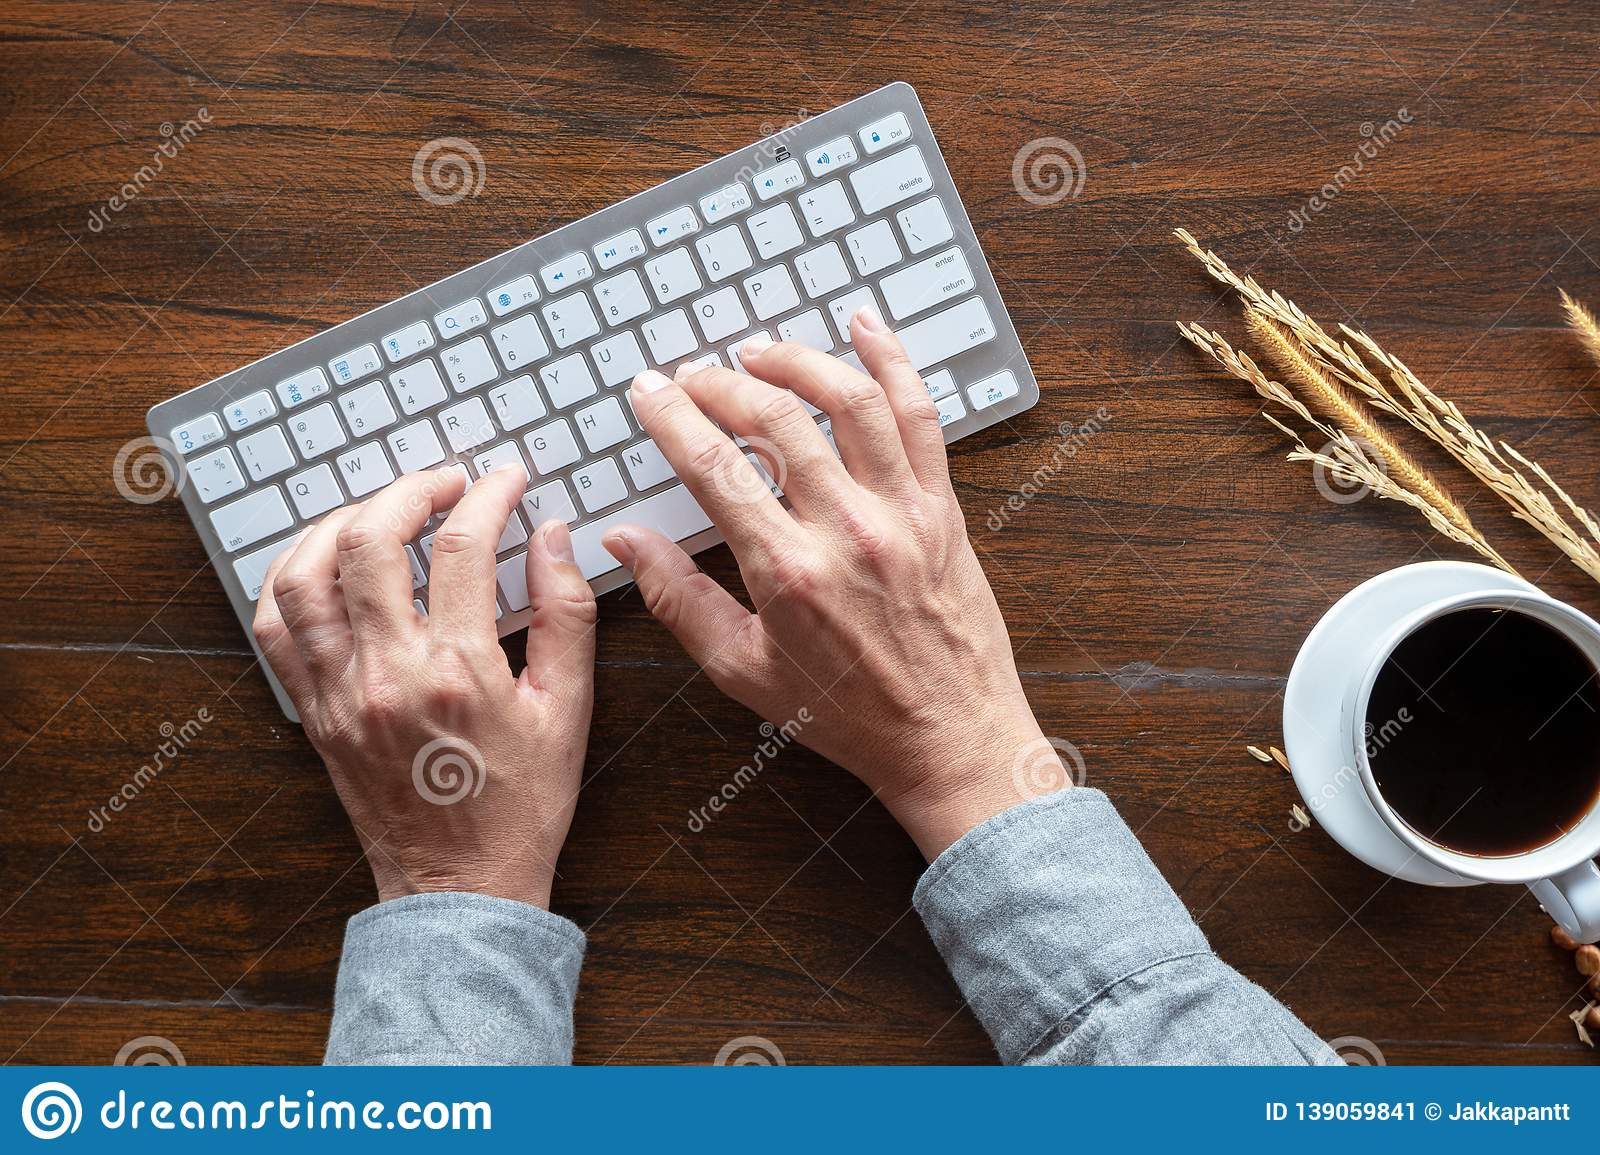 Top view of human hands typing on keyboard, wood desk